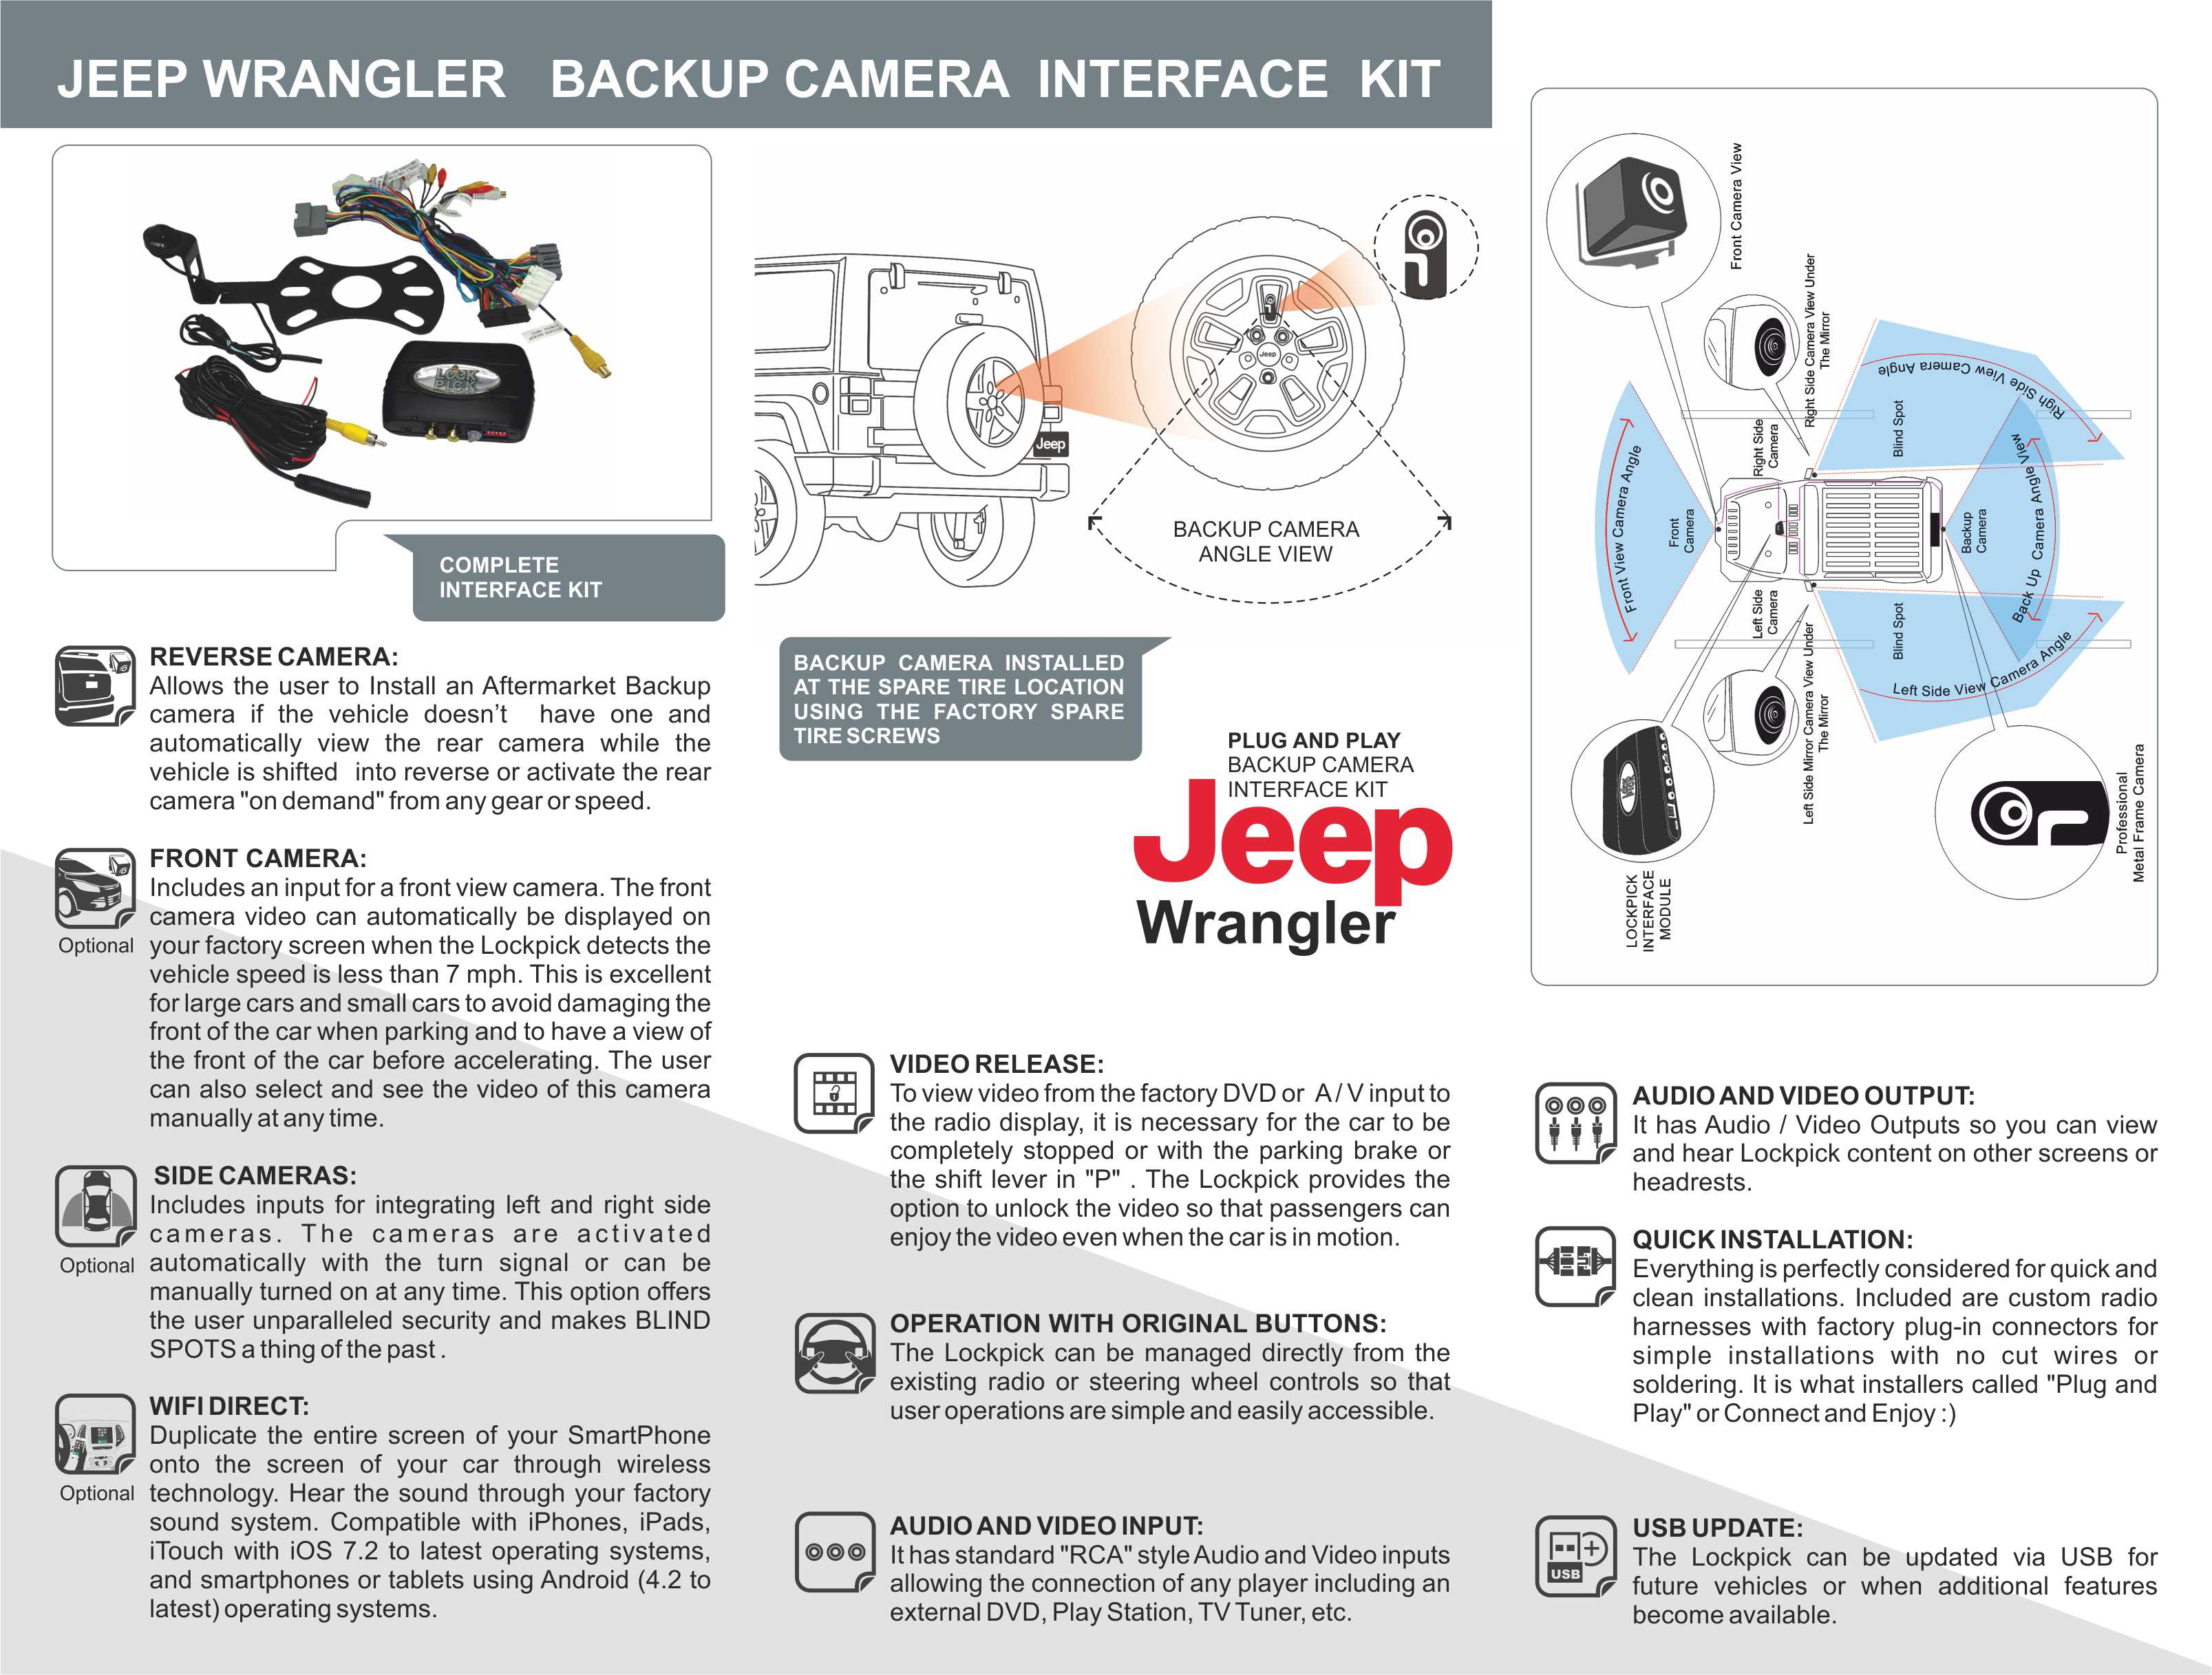 Home of the LOCKPICK INTERFACES – Jeep Wrangler Backup Switch Wiring